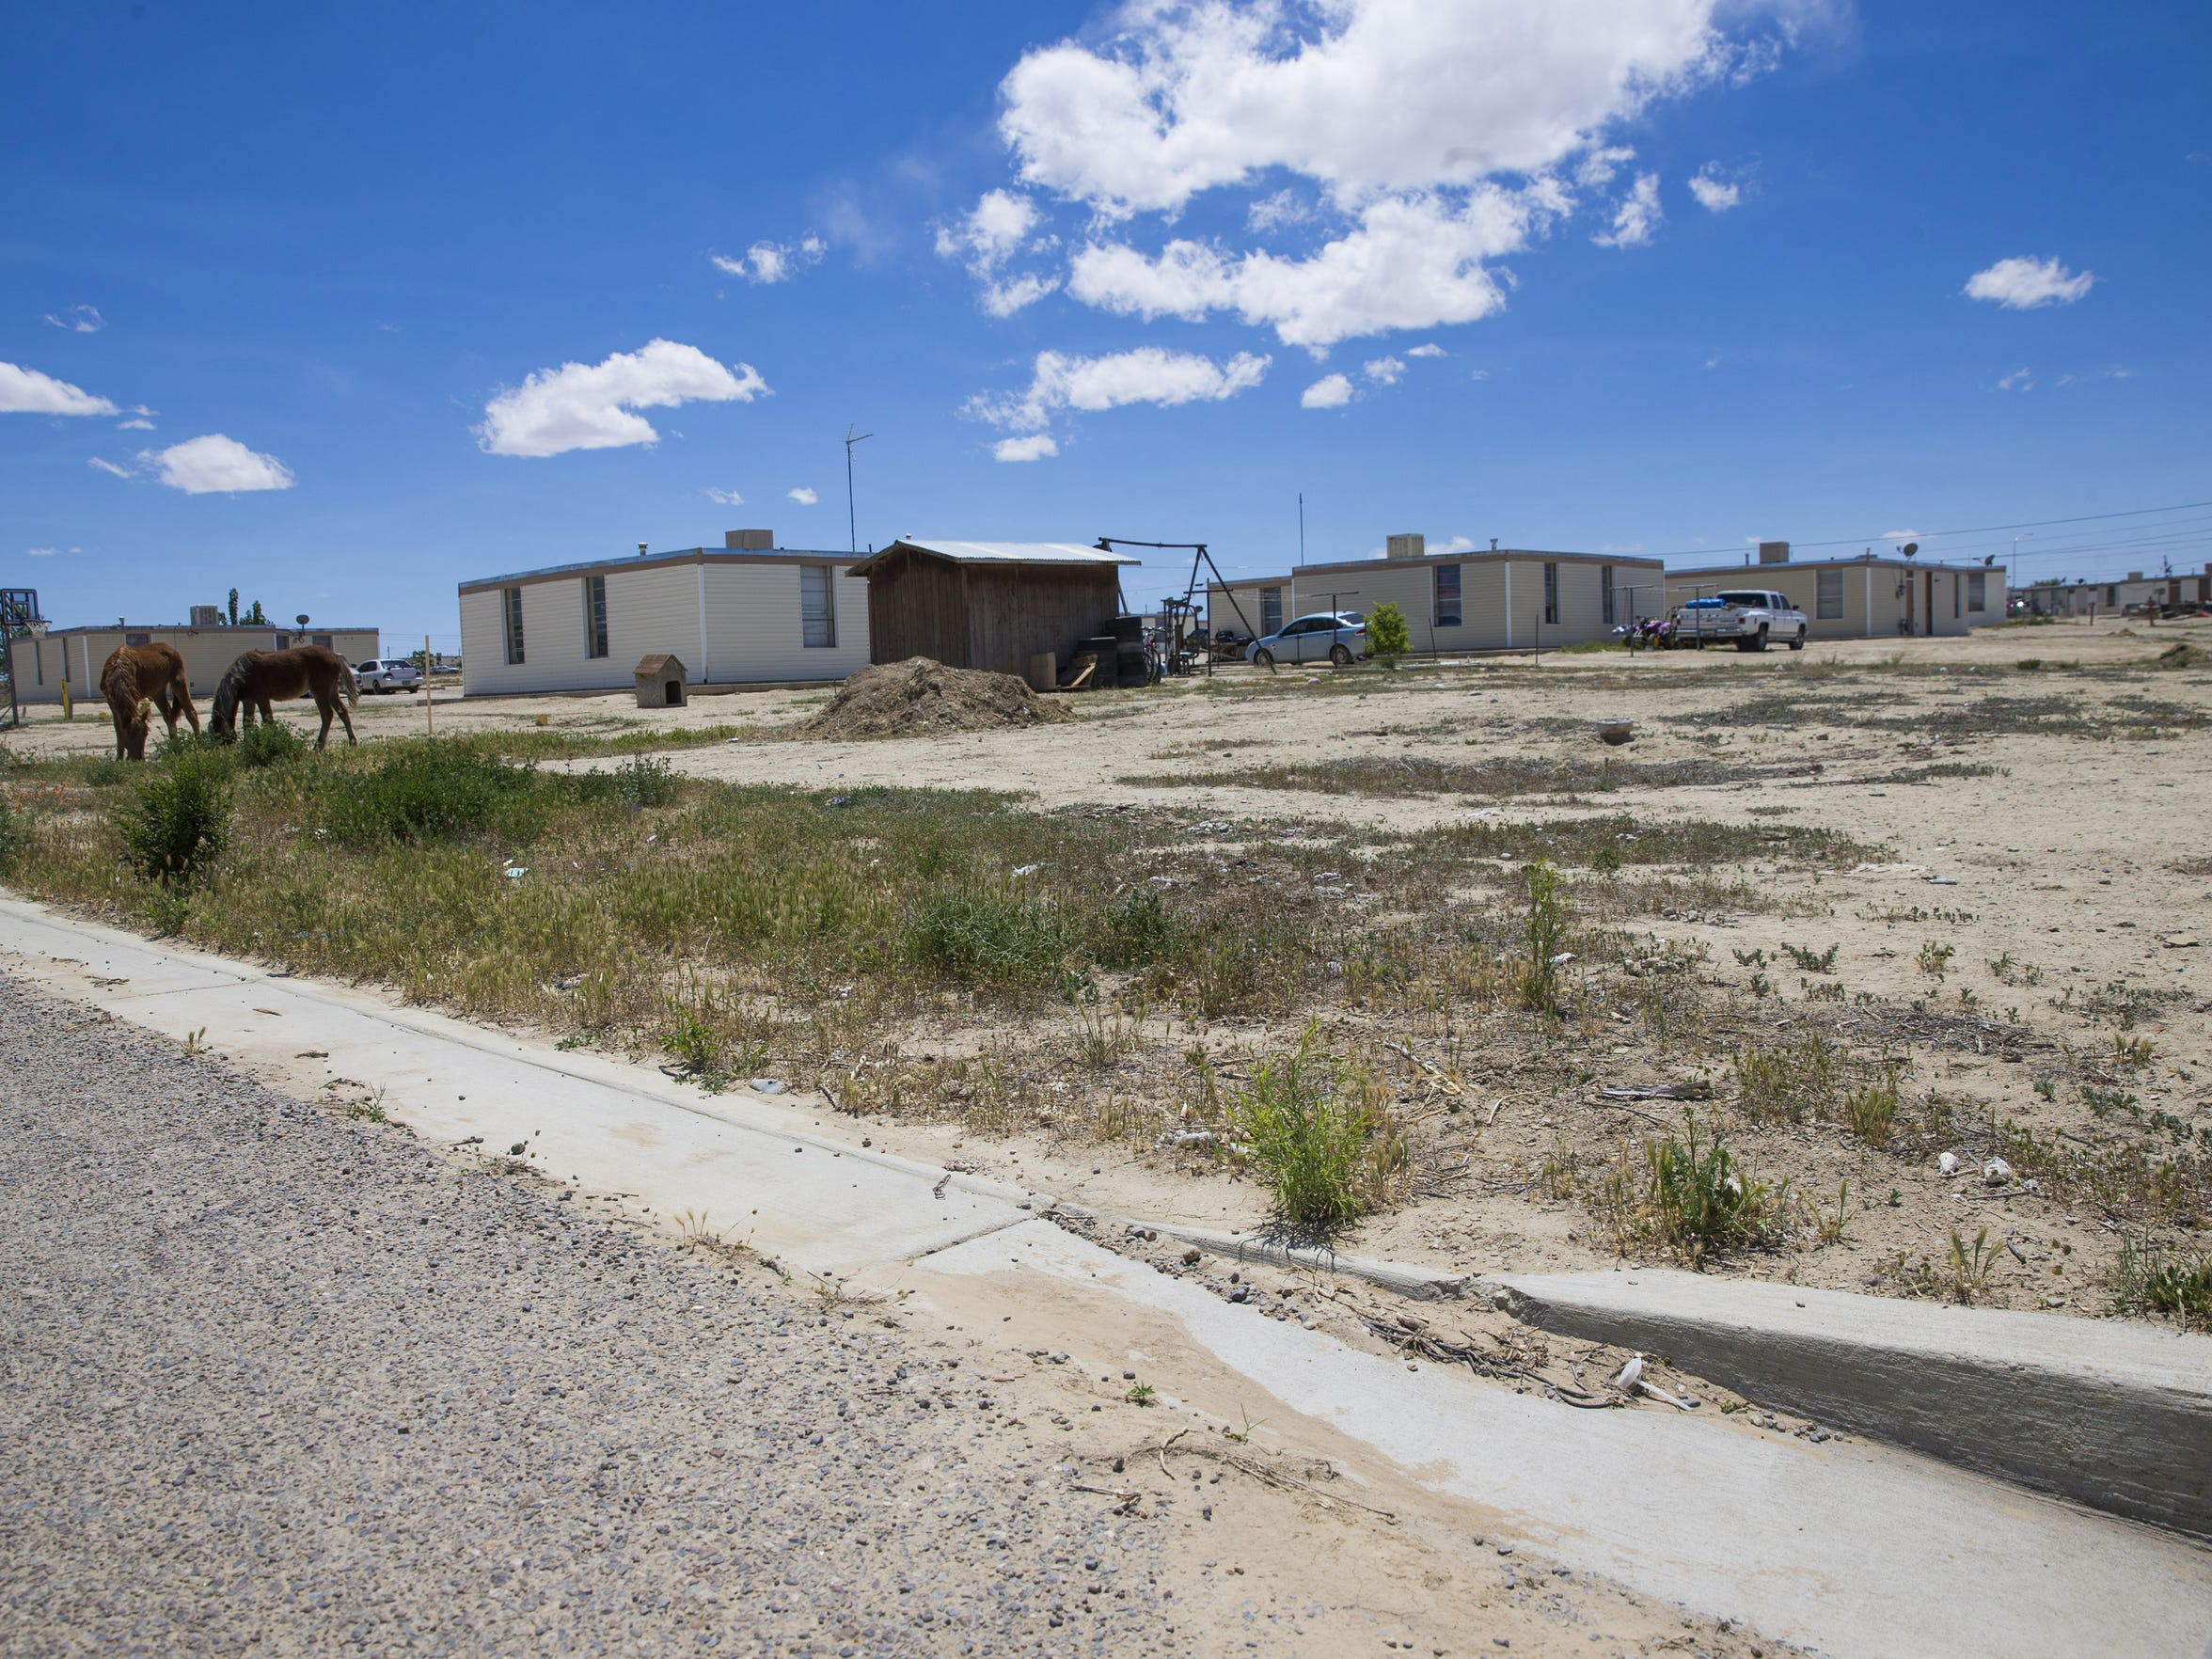 The Navajo Housing Authority tore down all but one